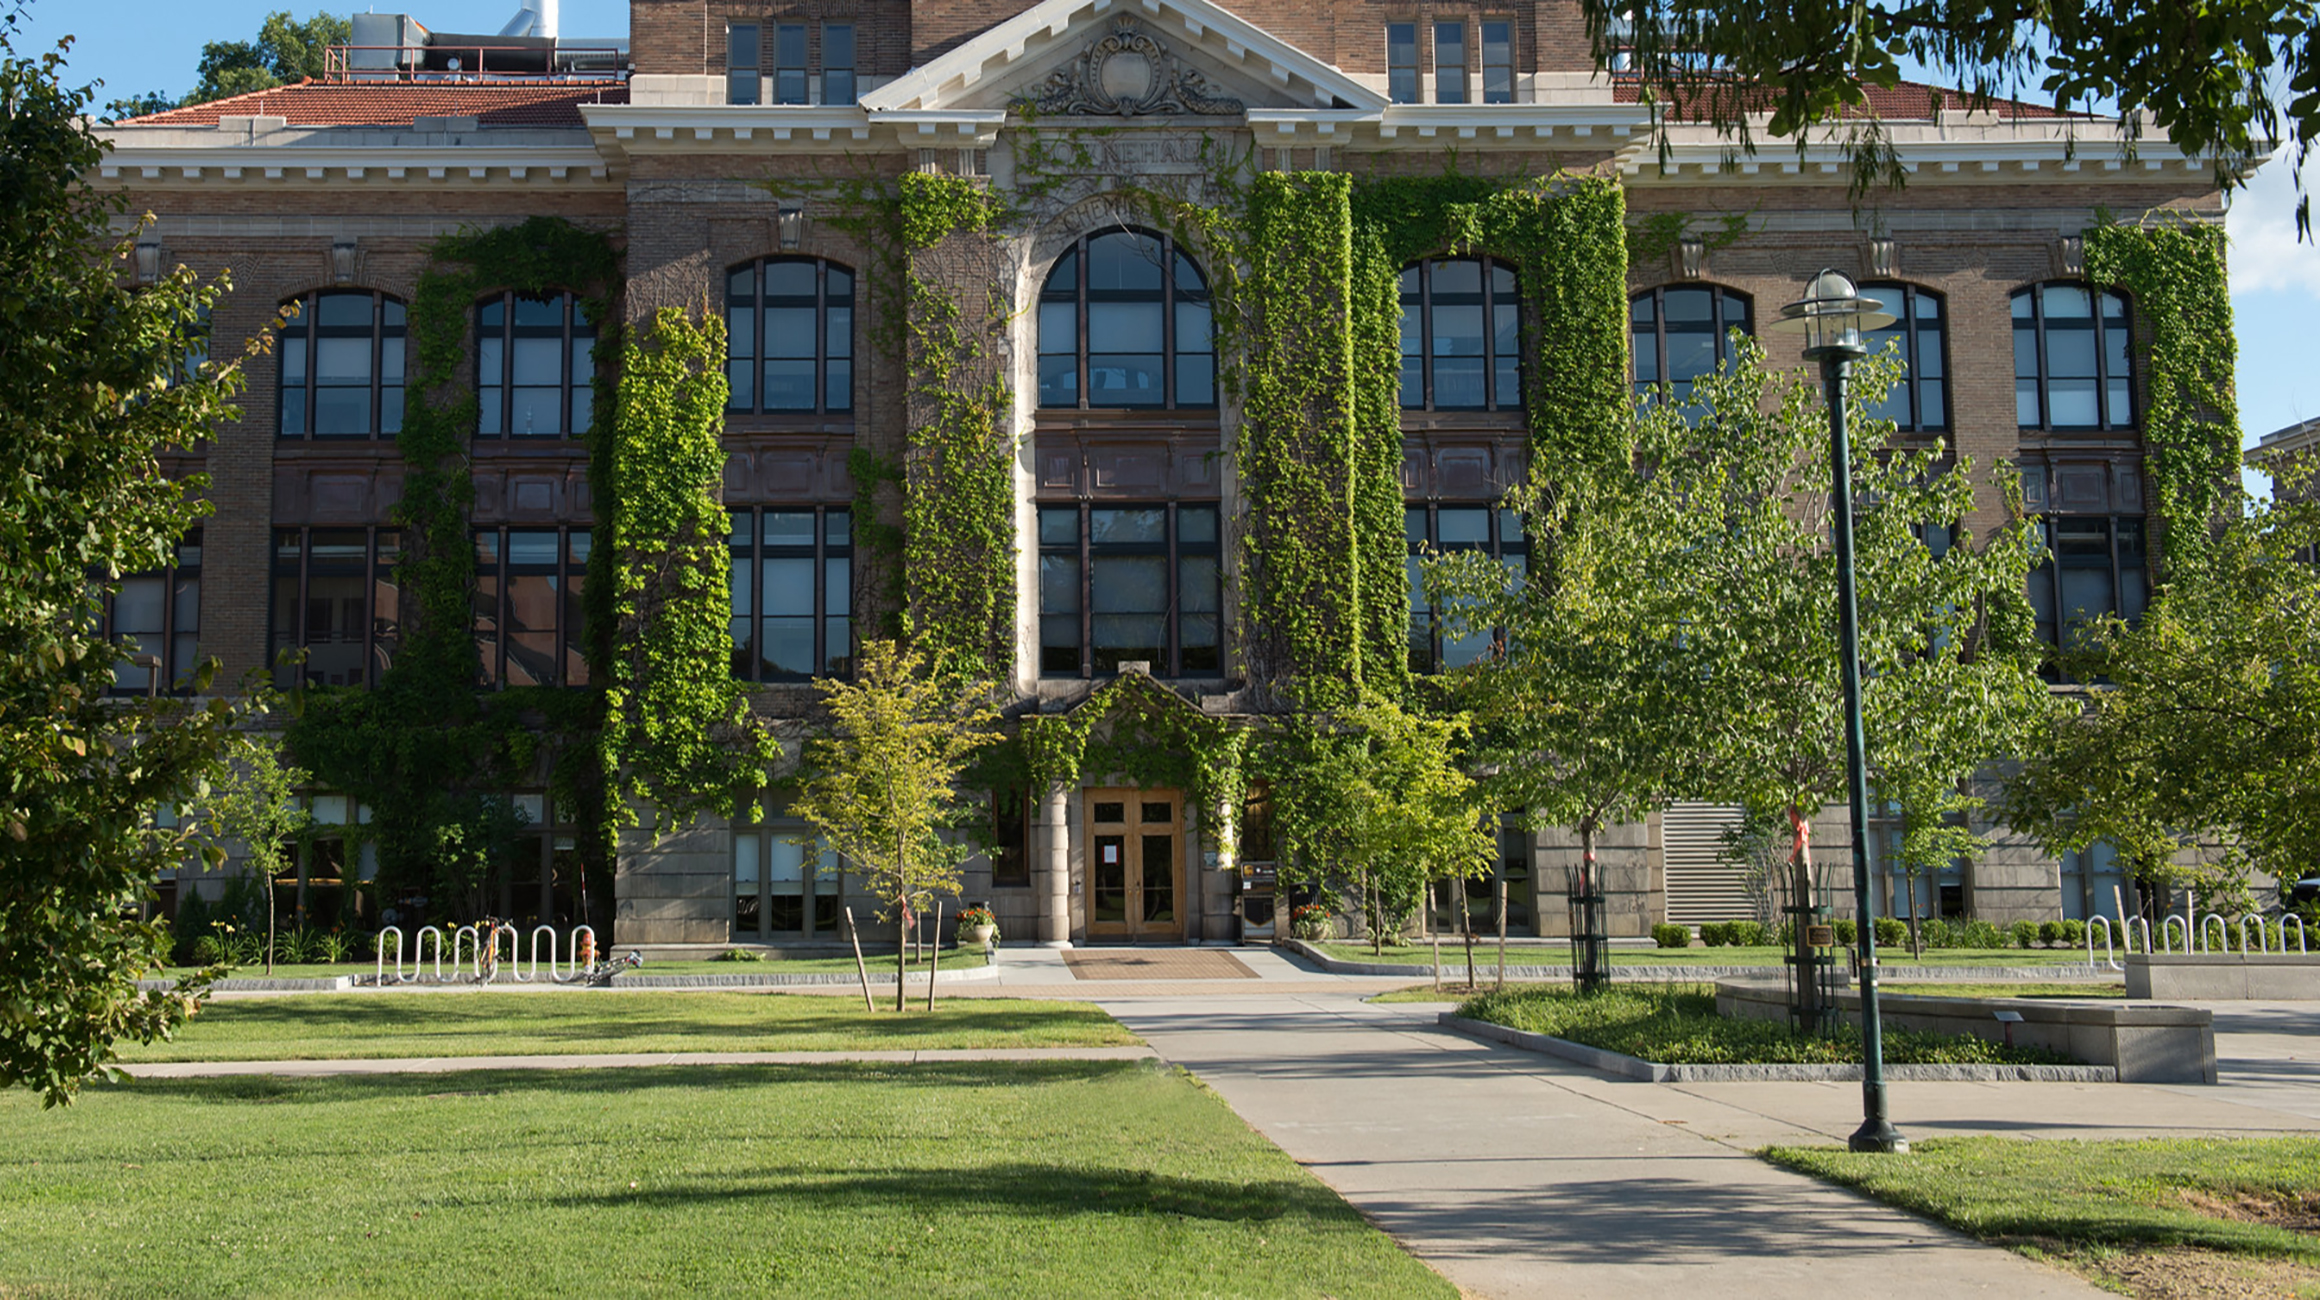 020 Bownecampus Essay Example University Of Arizona Honors College Stunning Prompt Full